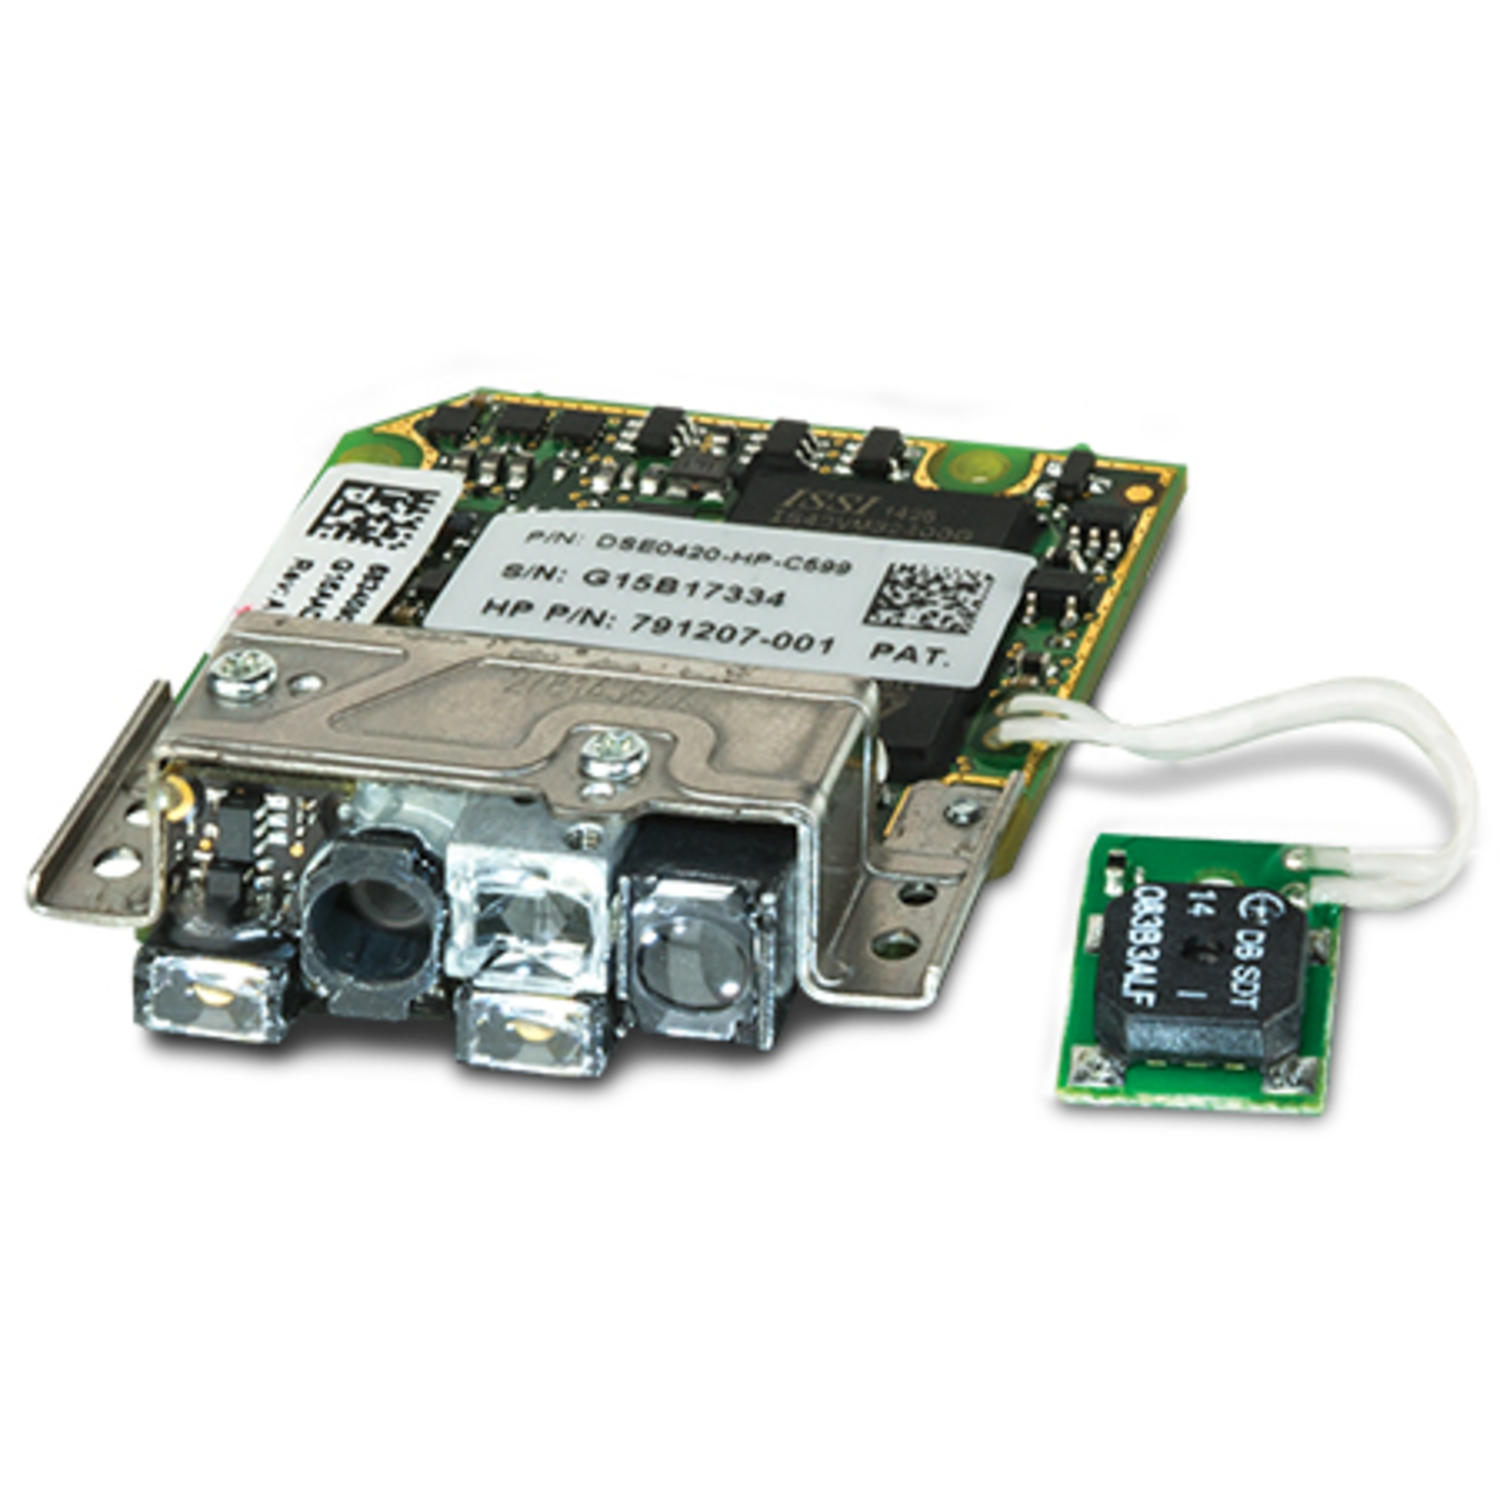 DSE04x0 1D/2D Decoded scan module